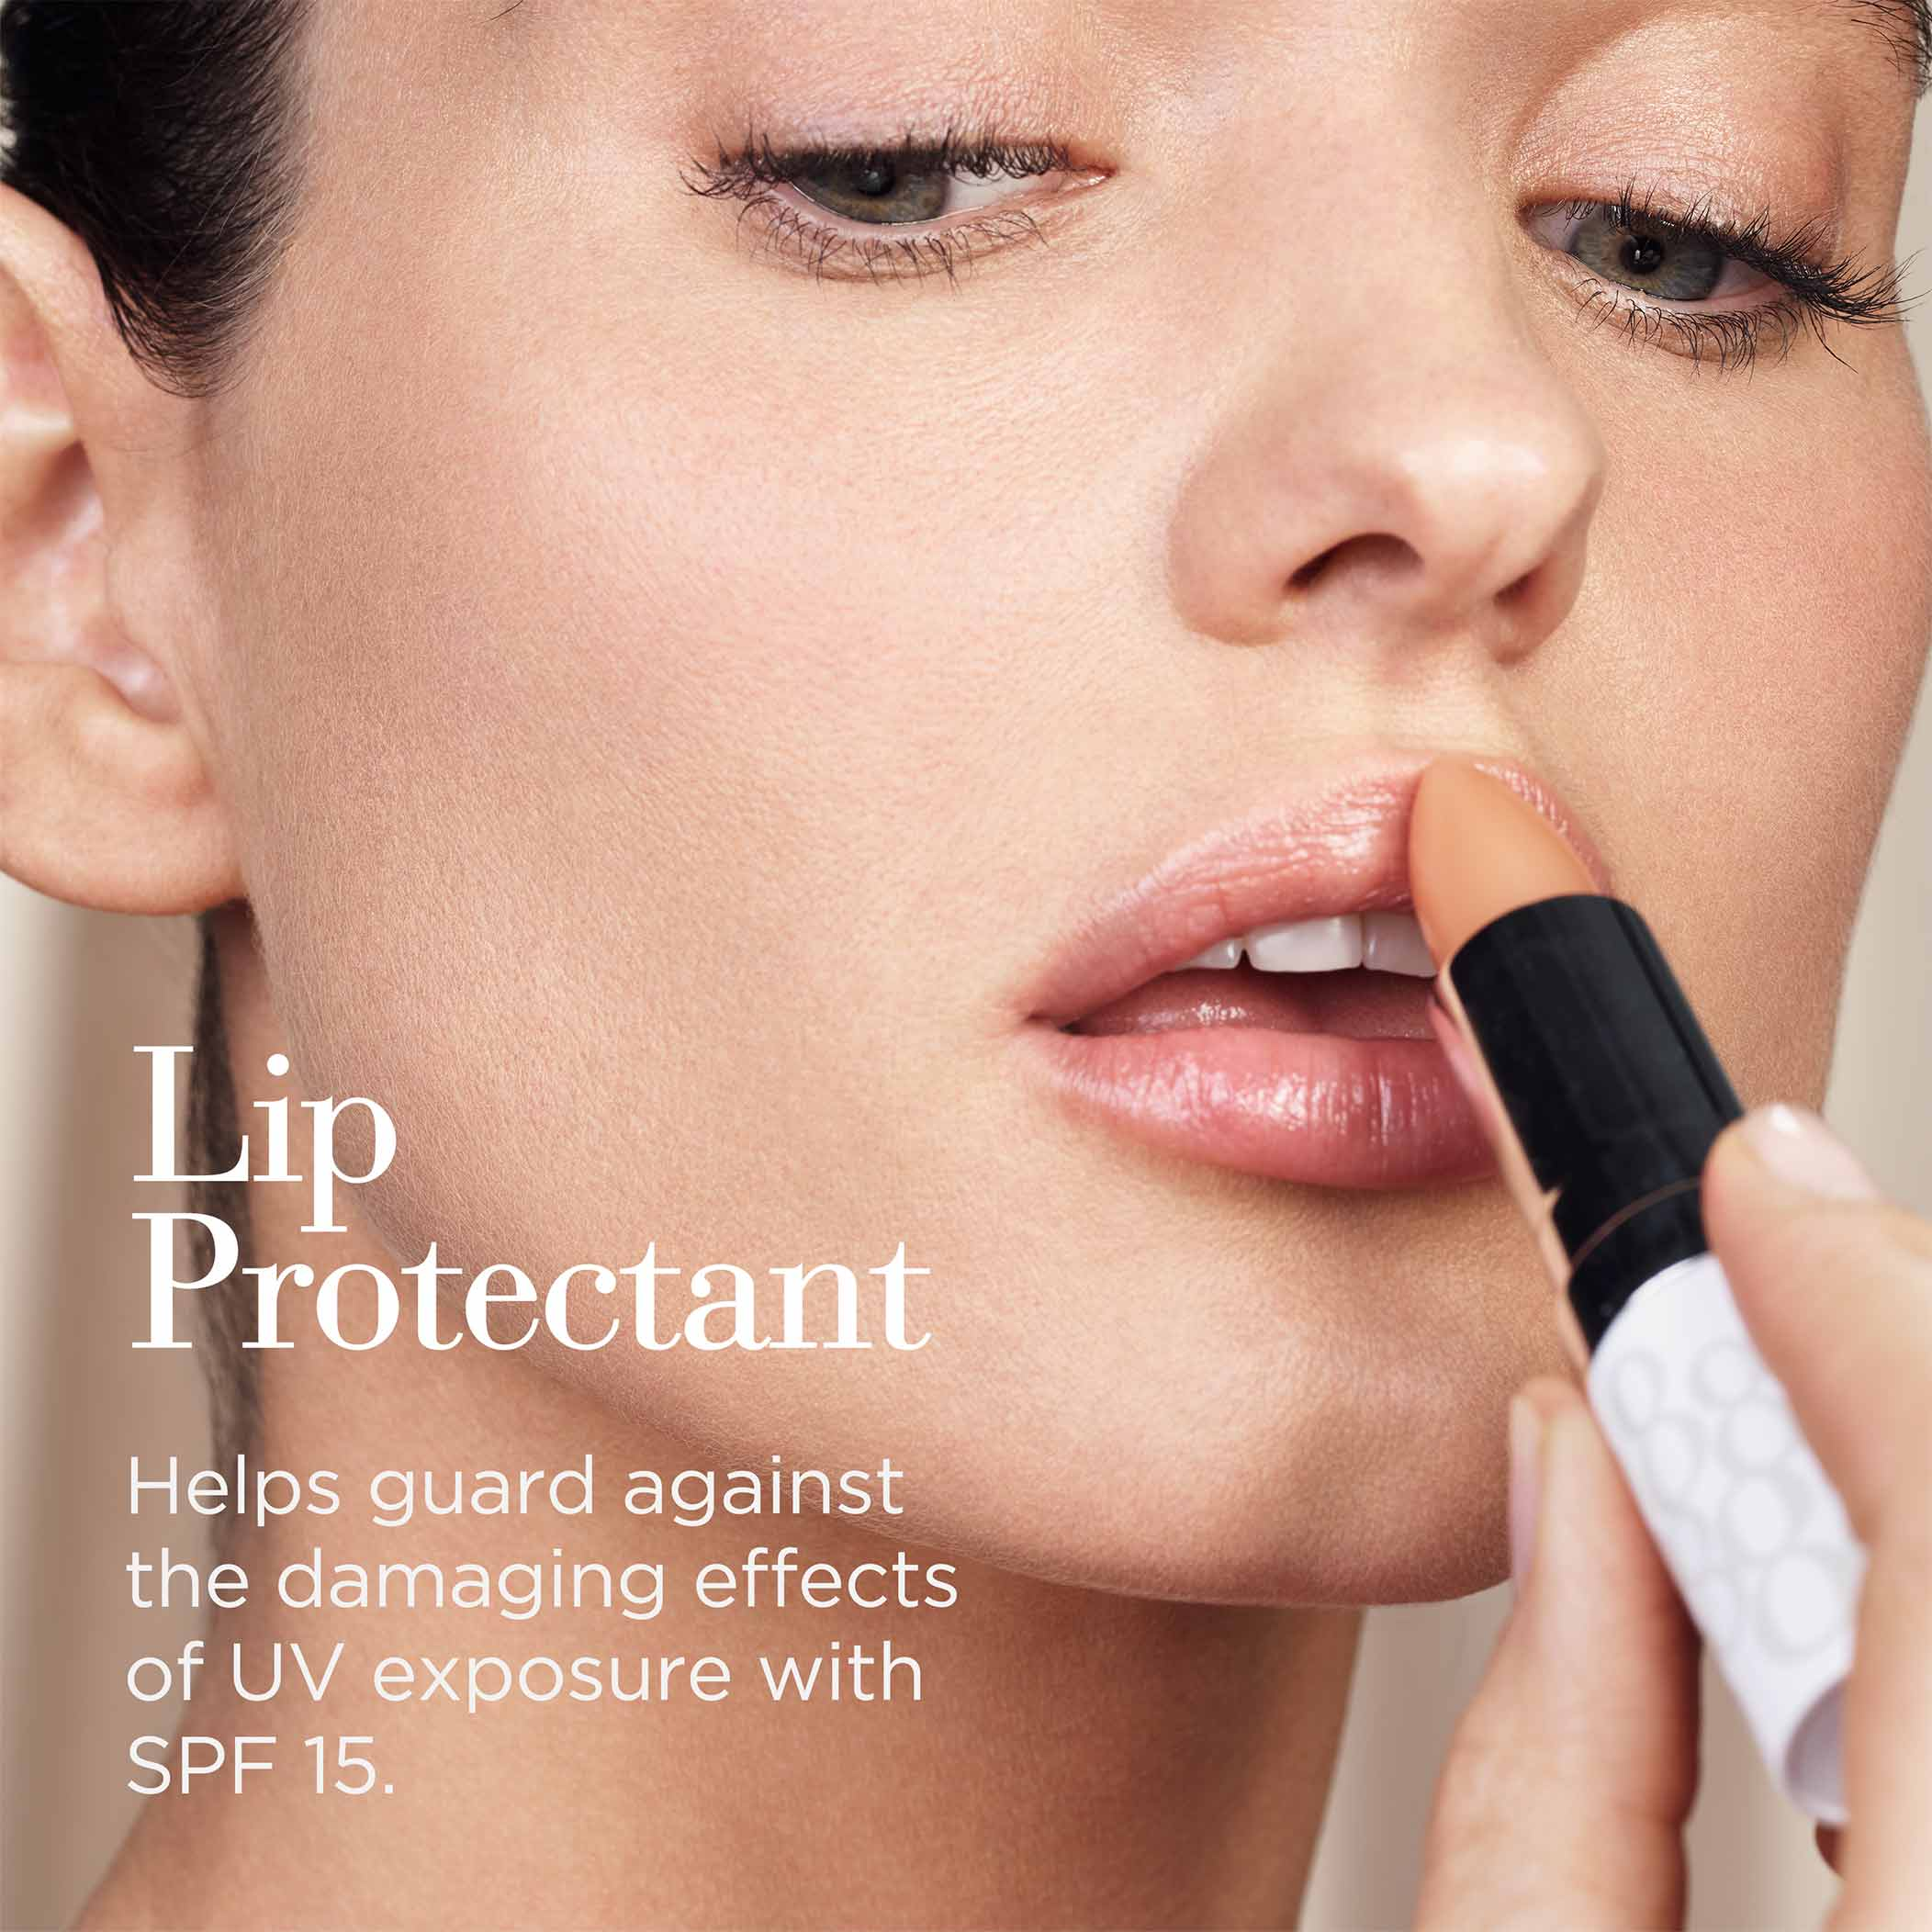 Lip Protectant-Helps guard against the damaging effects of UV exposure with SPF 15.